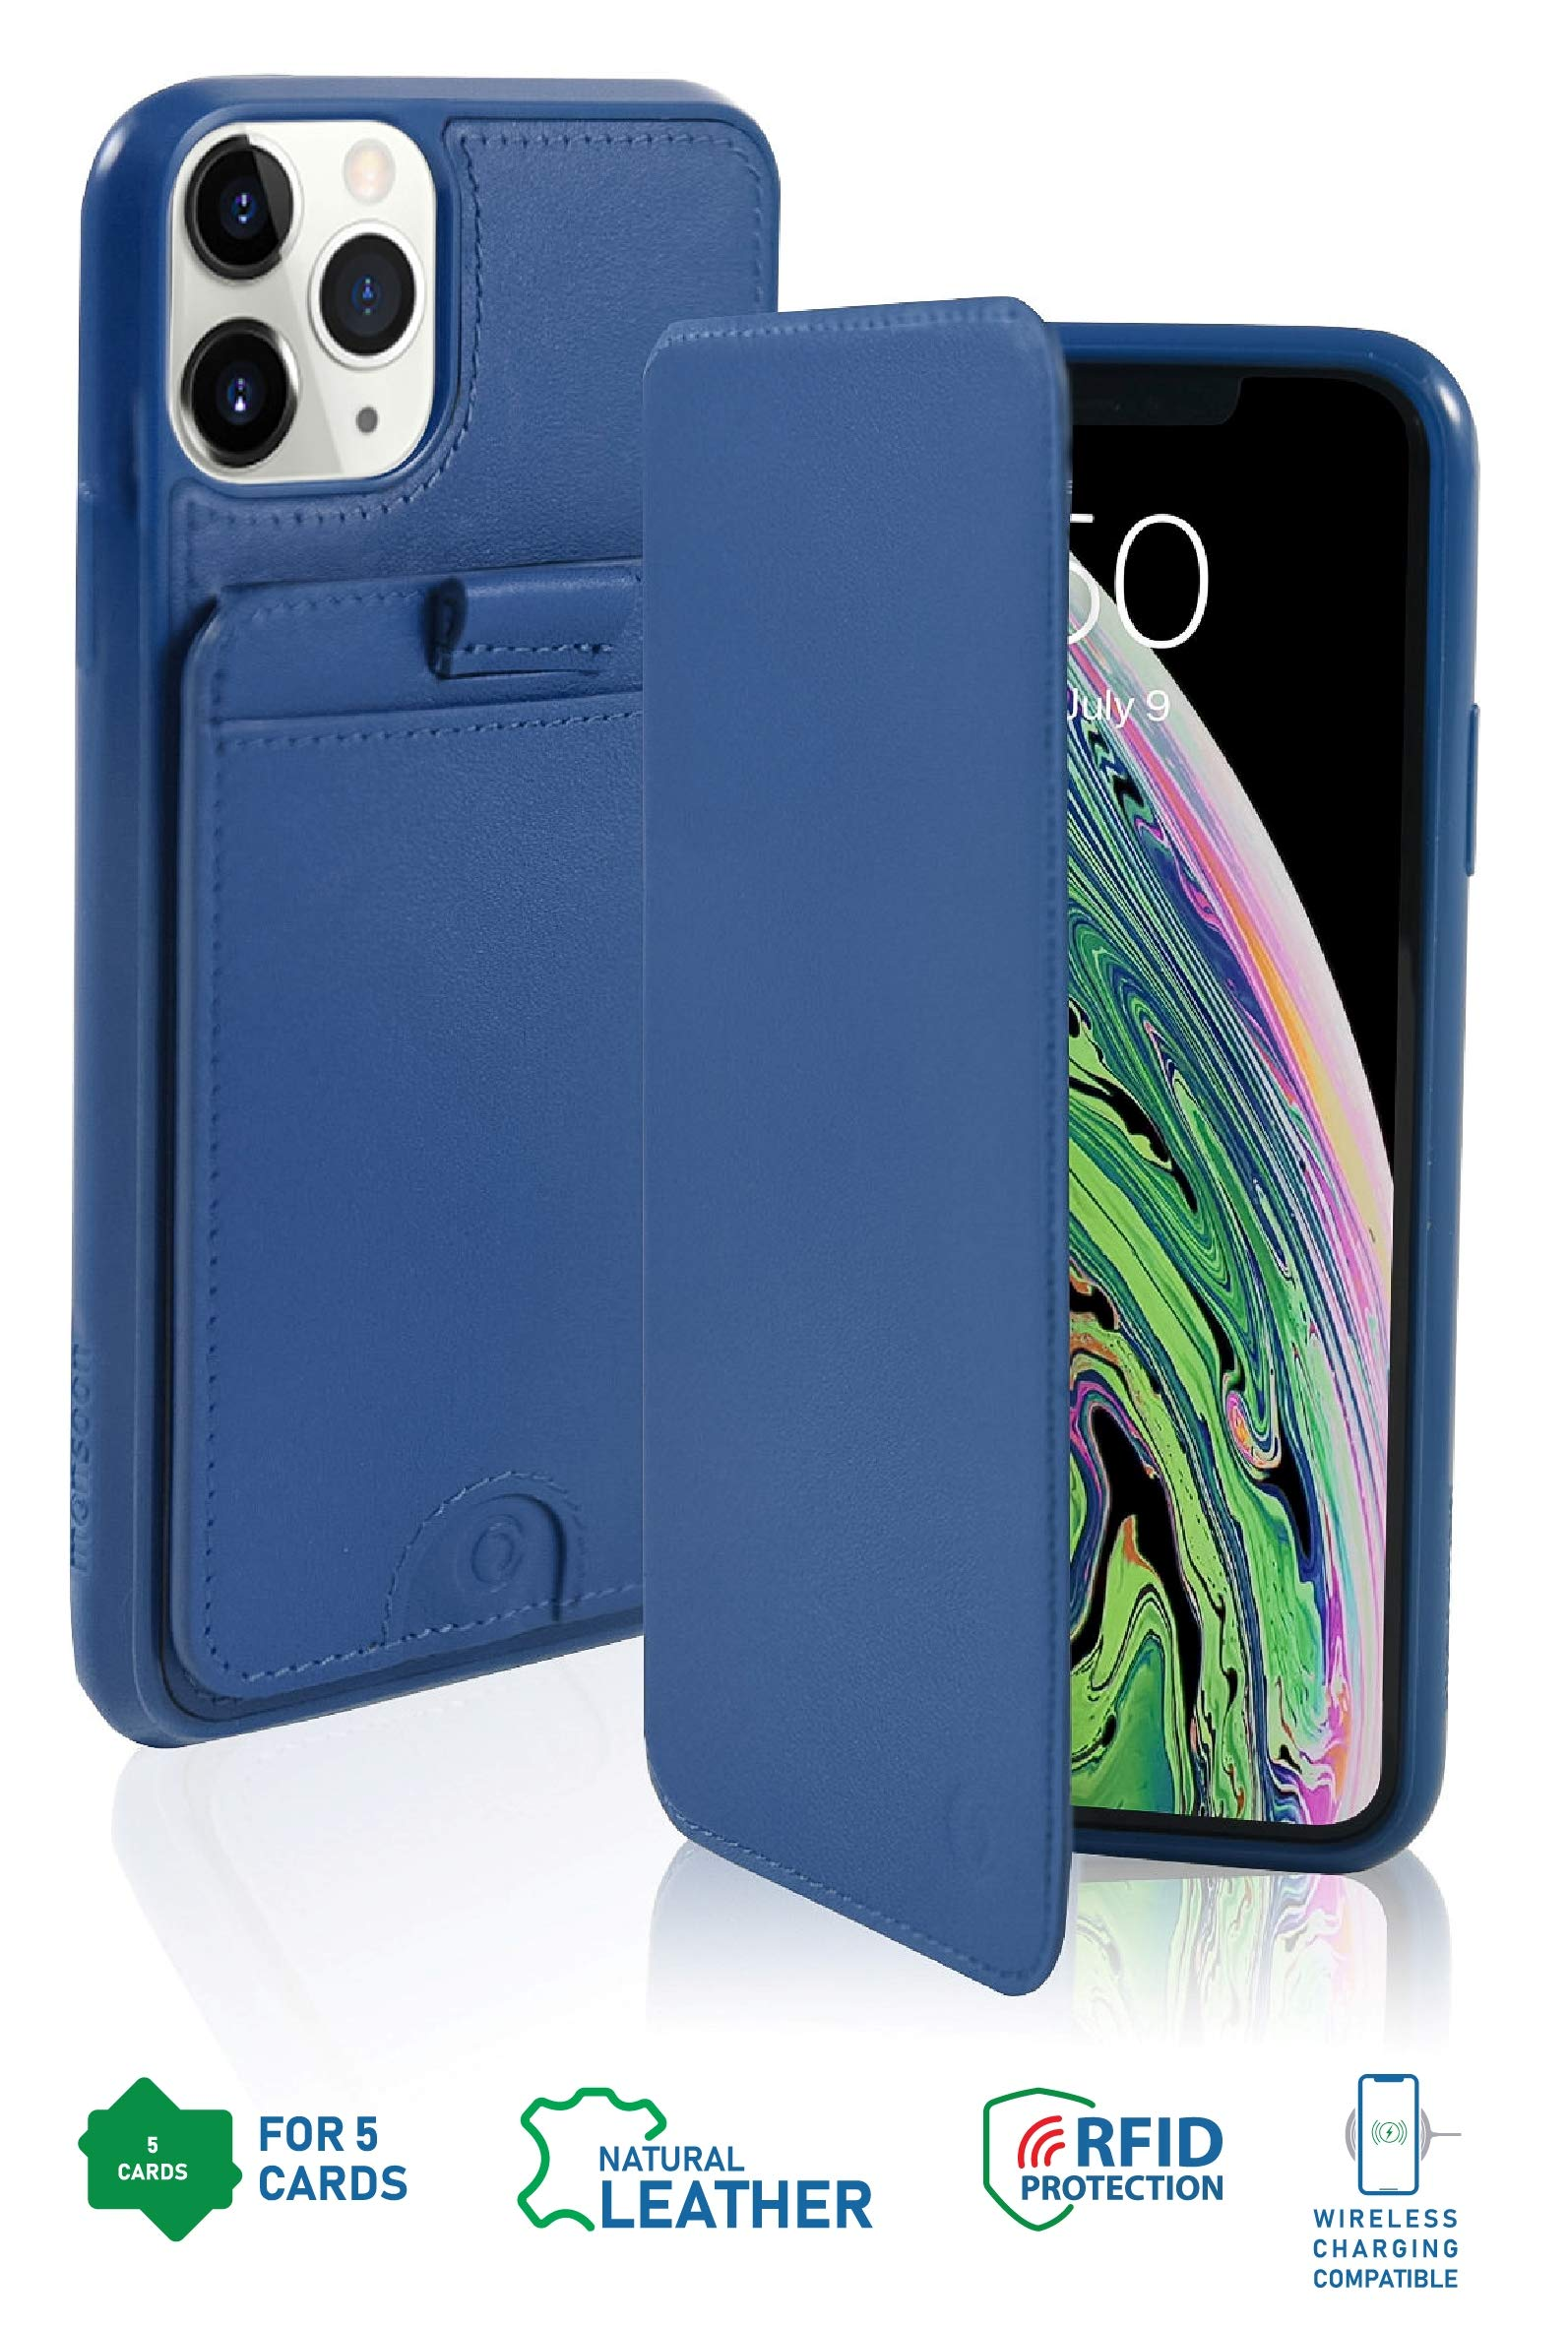 monsoon [Raindrop] Genuine Leather Wallet Folio Case with Removable Slim Wallet for iPhone 11 Pro MAX - Holds 5 Cards   RFID   Stand   Wireless Charging OR Magnetic Car Mount Compatible - Blue